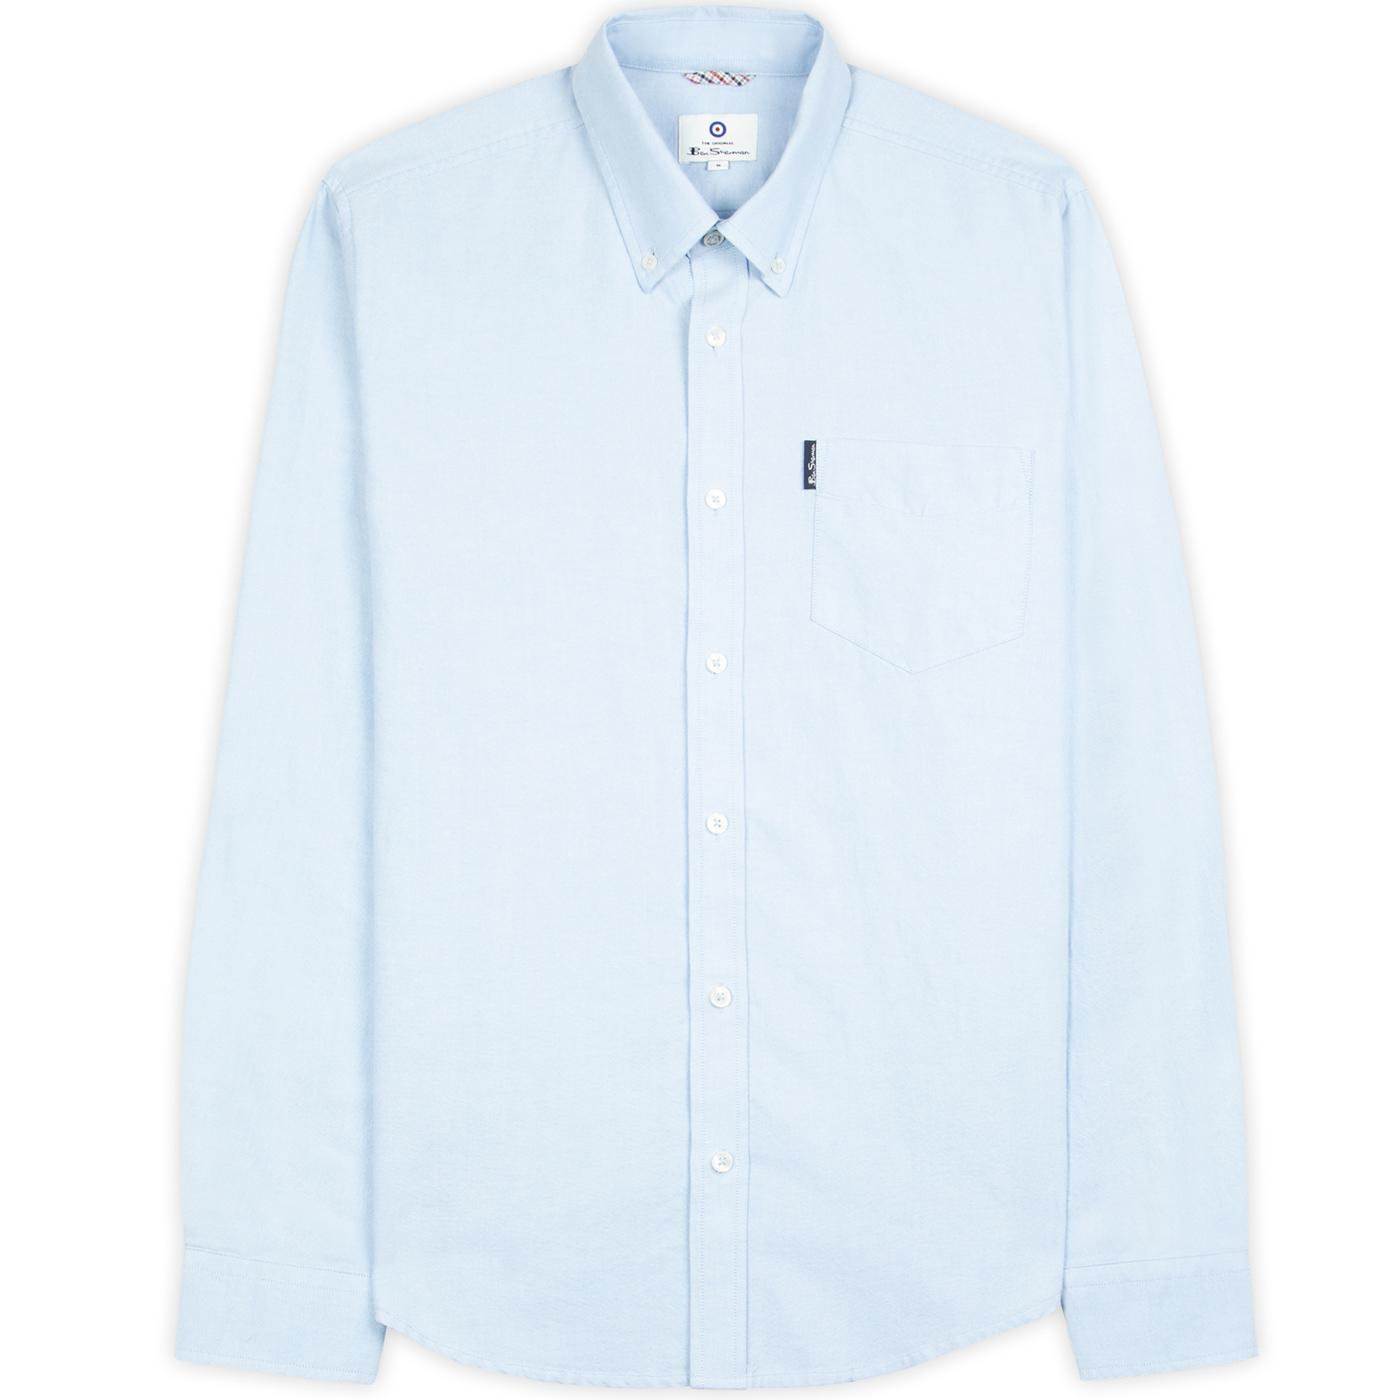 BEN SHERMAN 60s Mod LS Signature Oxford Shirt SKY